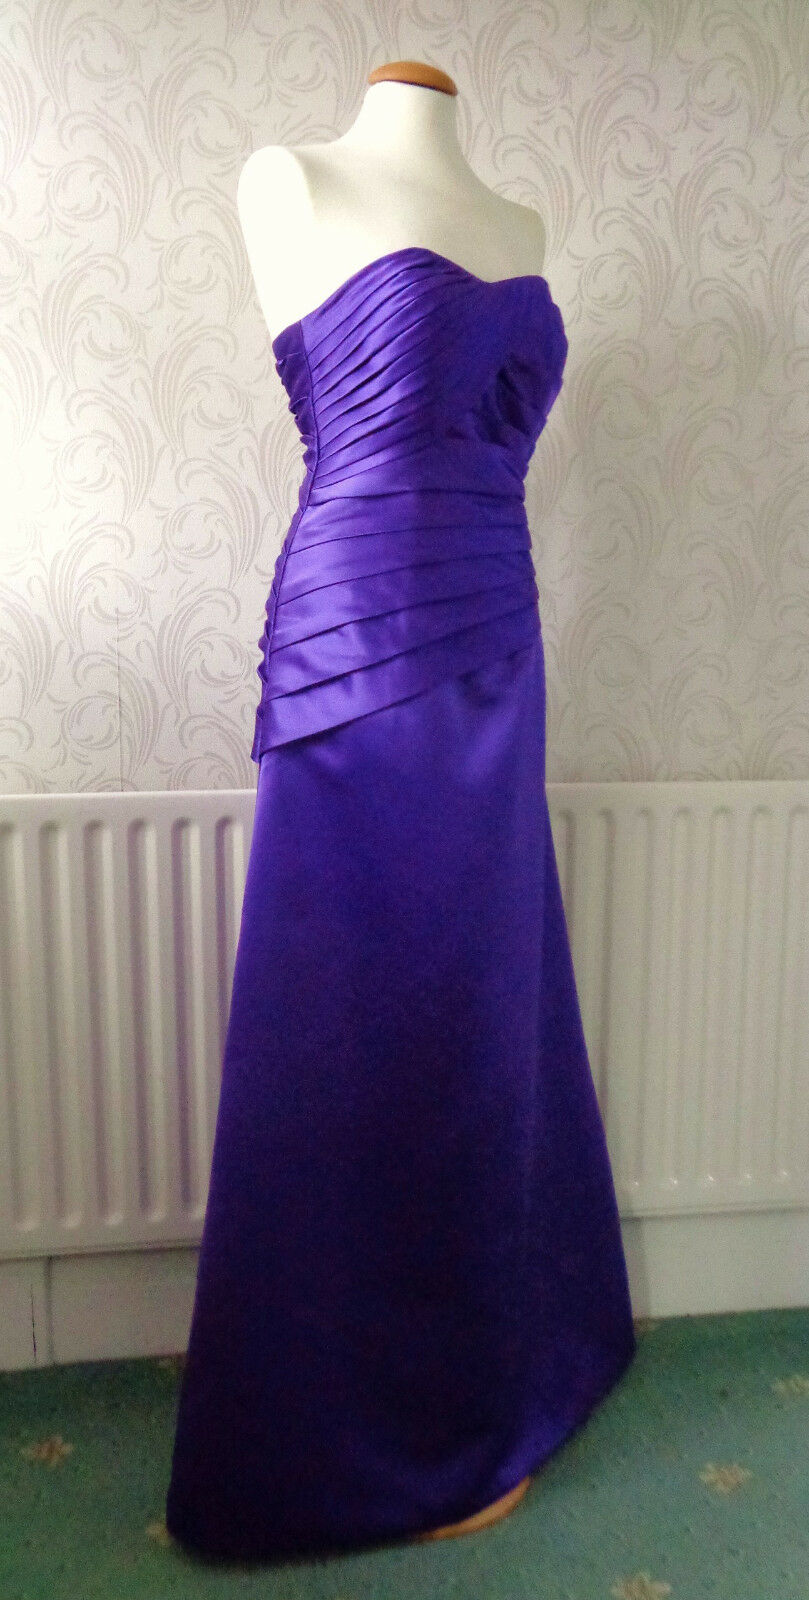 Gorgeous ClassyPurple Satin Long Maxi Prom Party Dress Ball Gown Size12 Bust 34